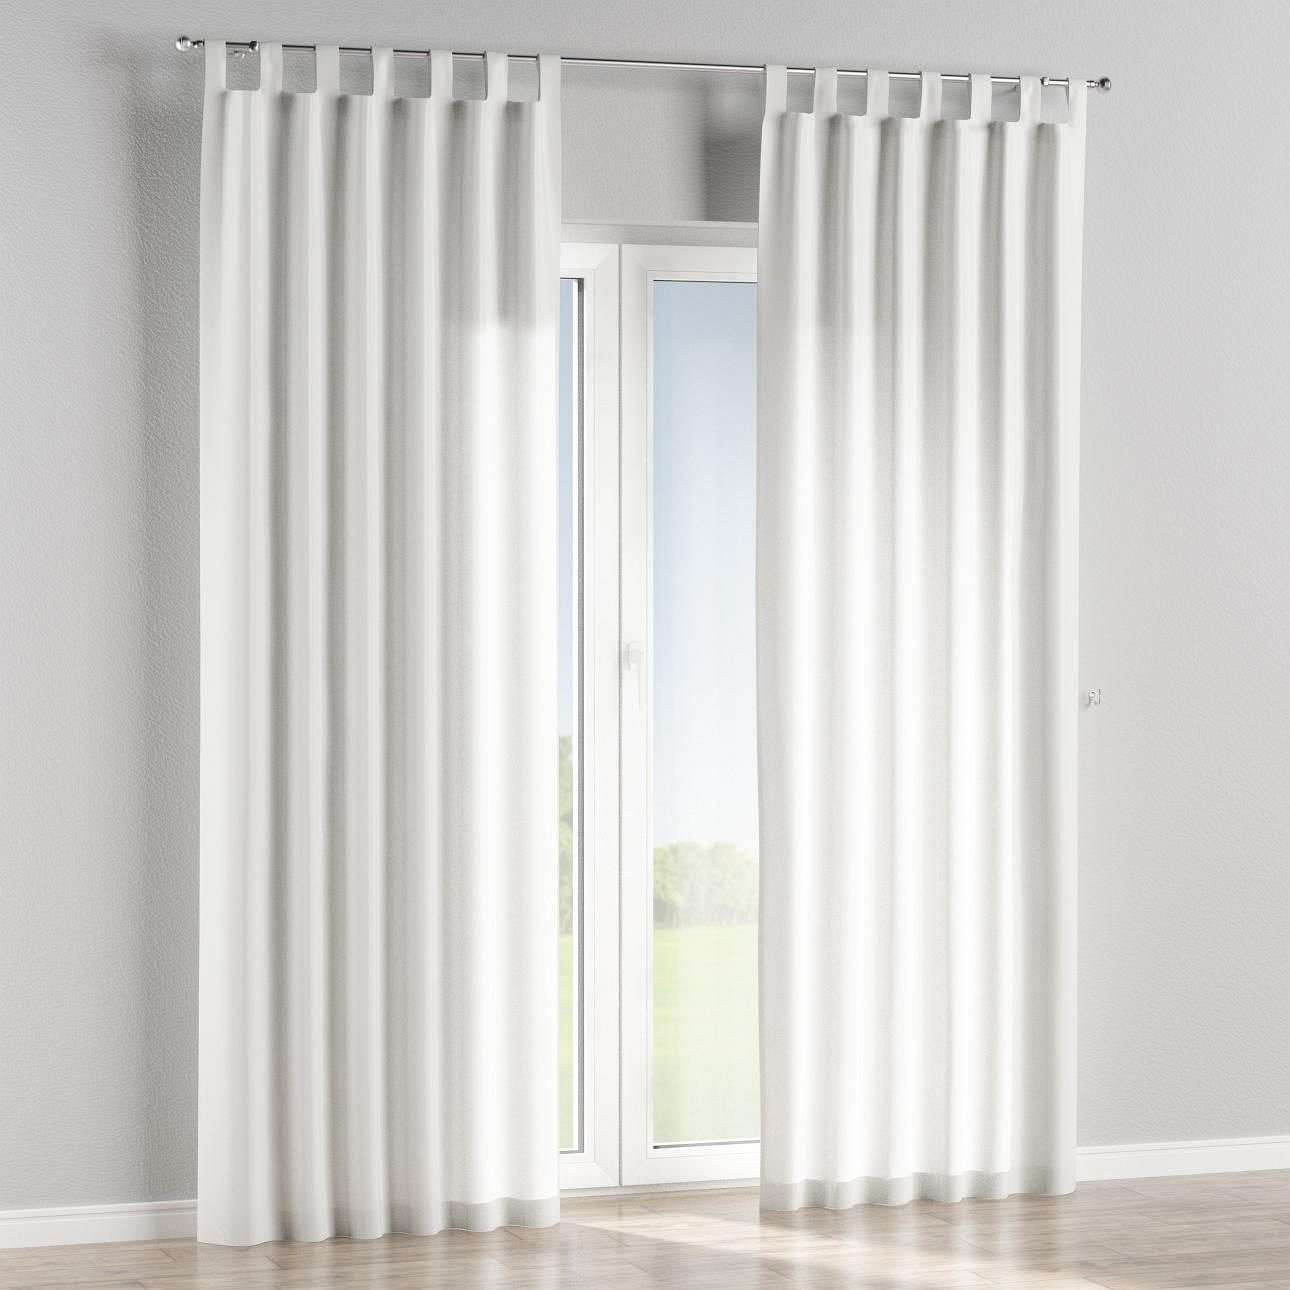 Tab top curtains in collection Freestyle, fabric: 150-20